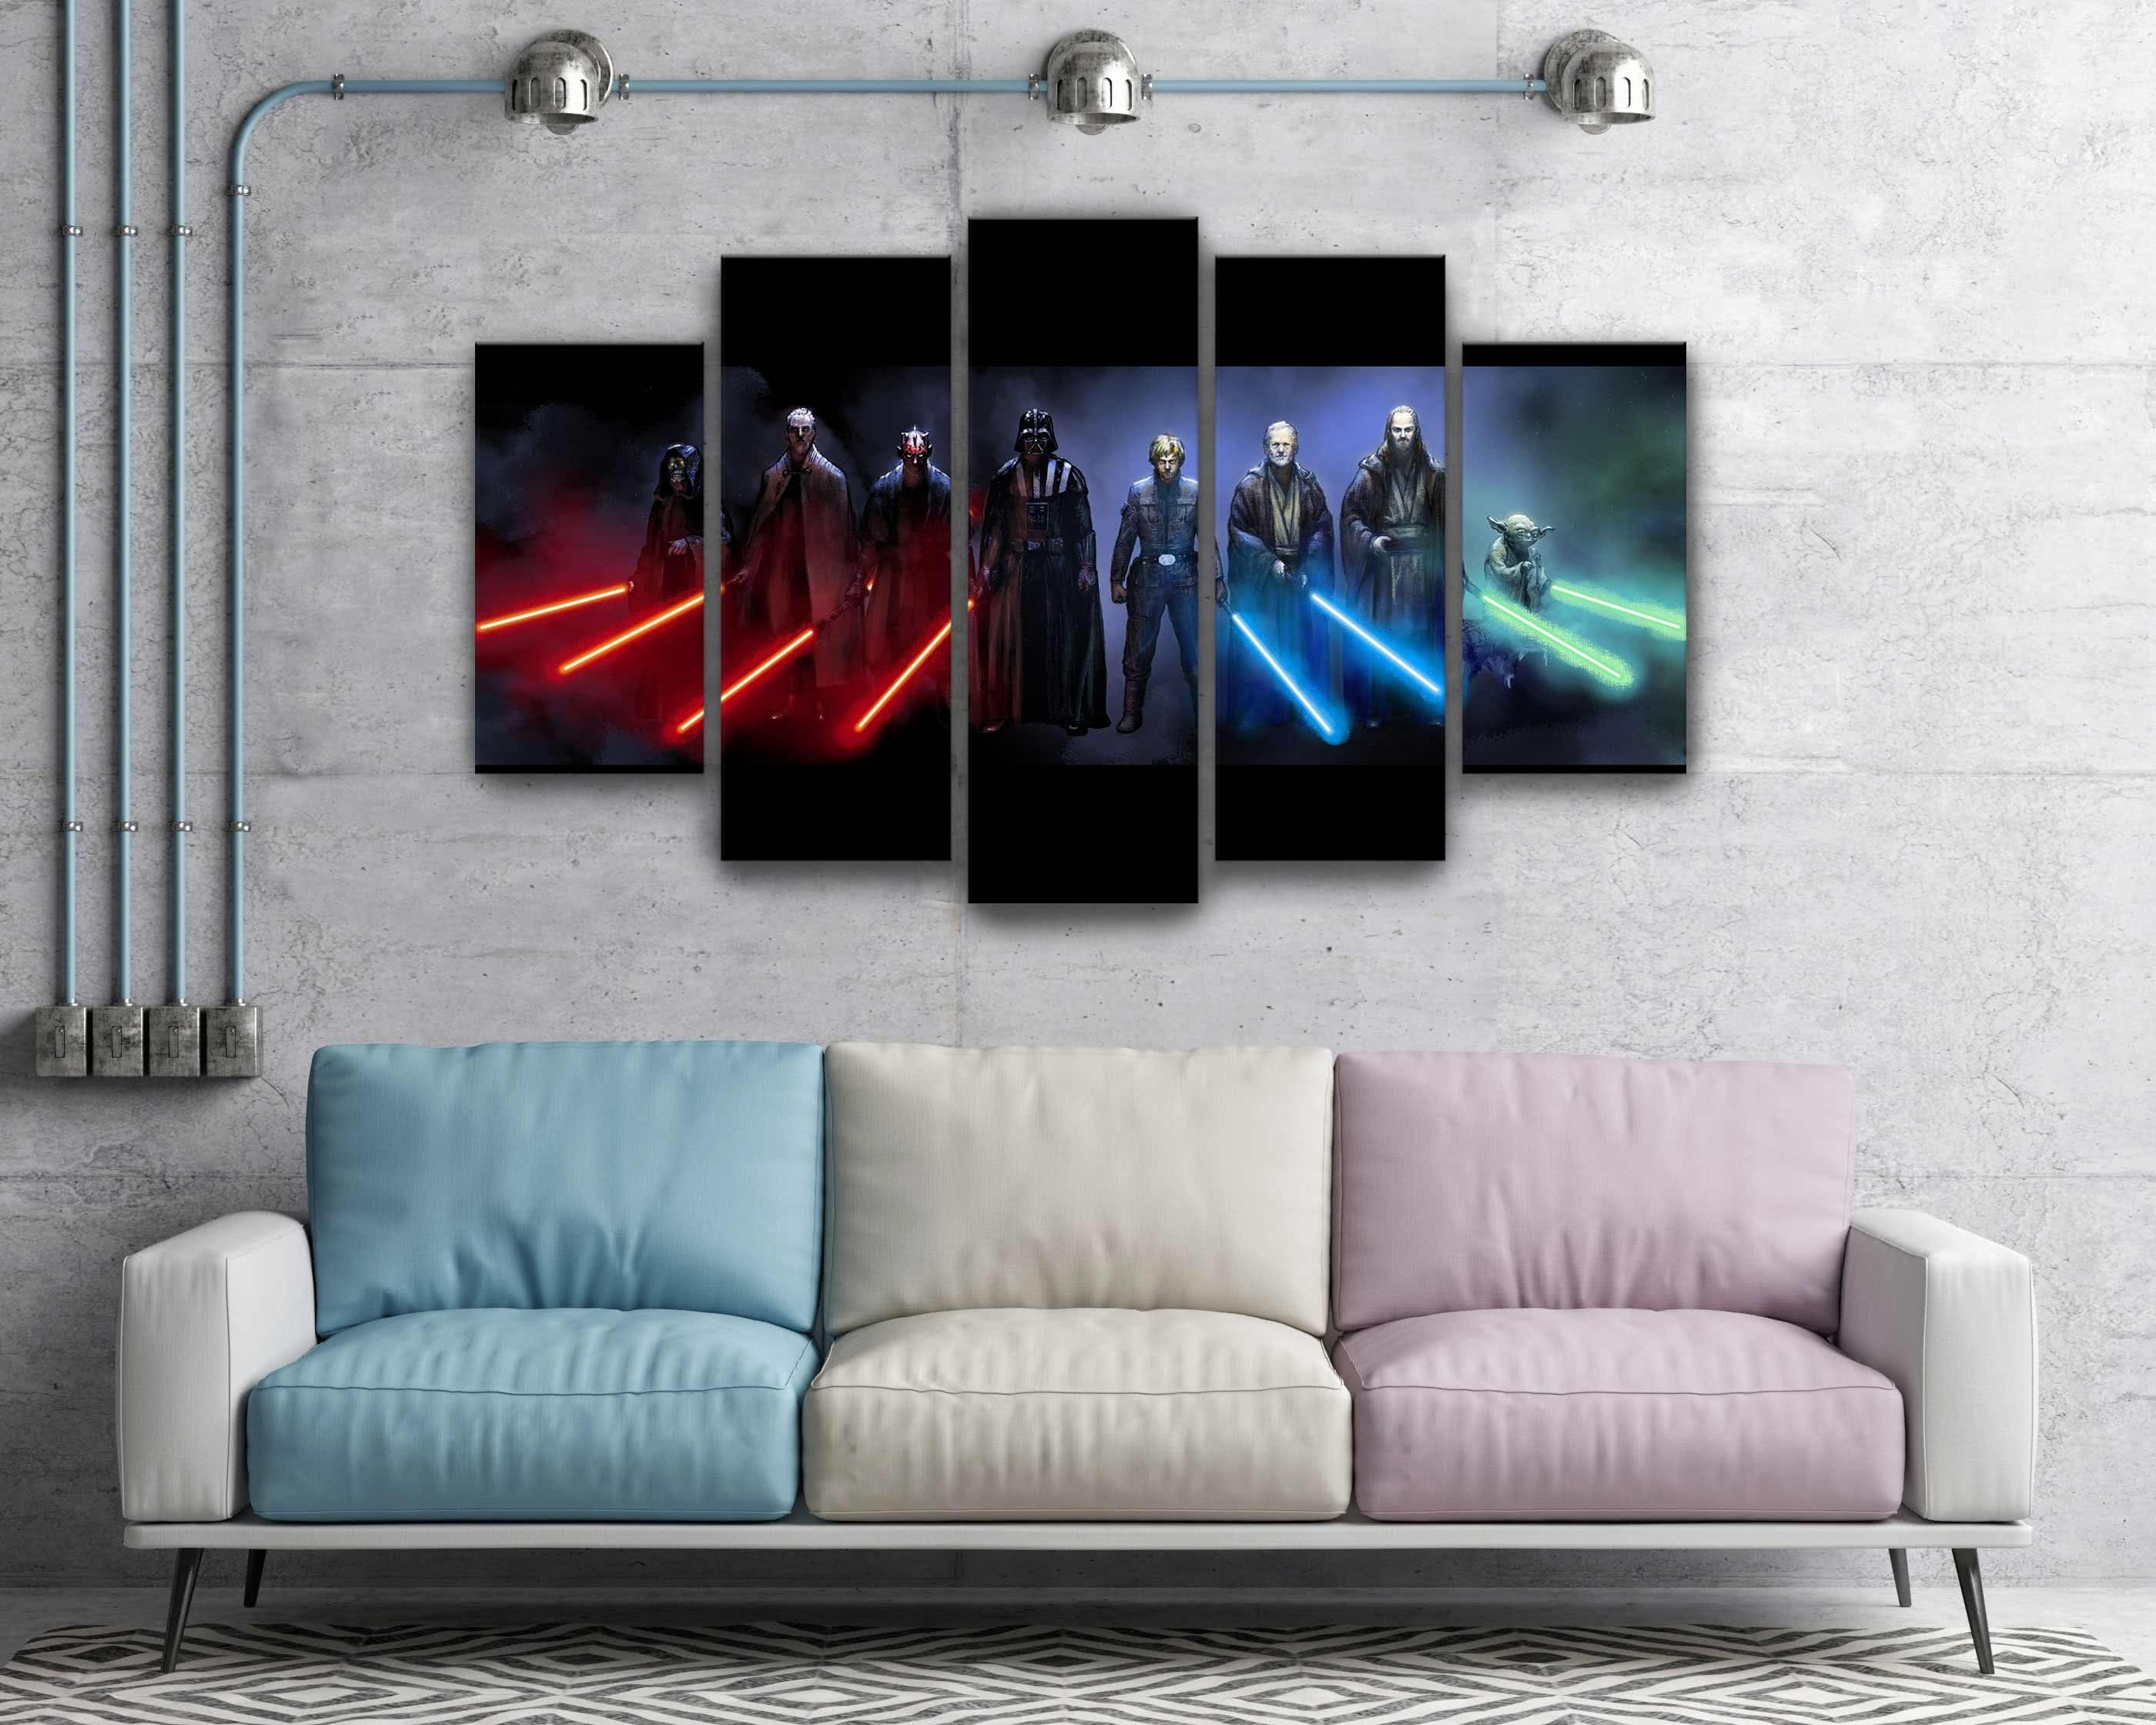 Star Wars Darth Vader Luke Skywalker Jedi And Sith Lightsaber Canvas Regarding 2017 Star Wars Wall Art (View 9 of 15)